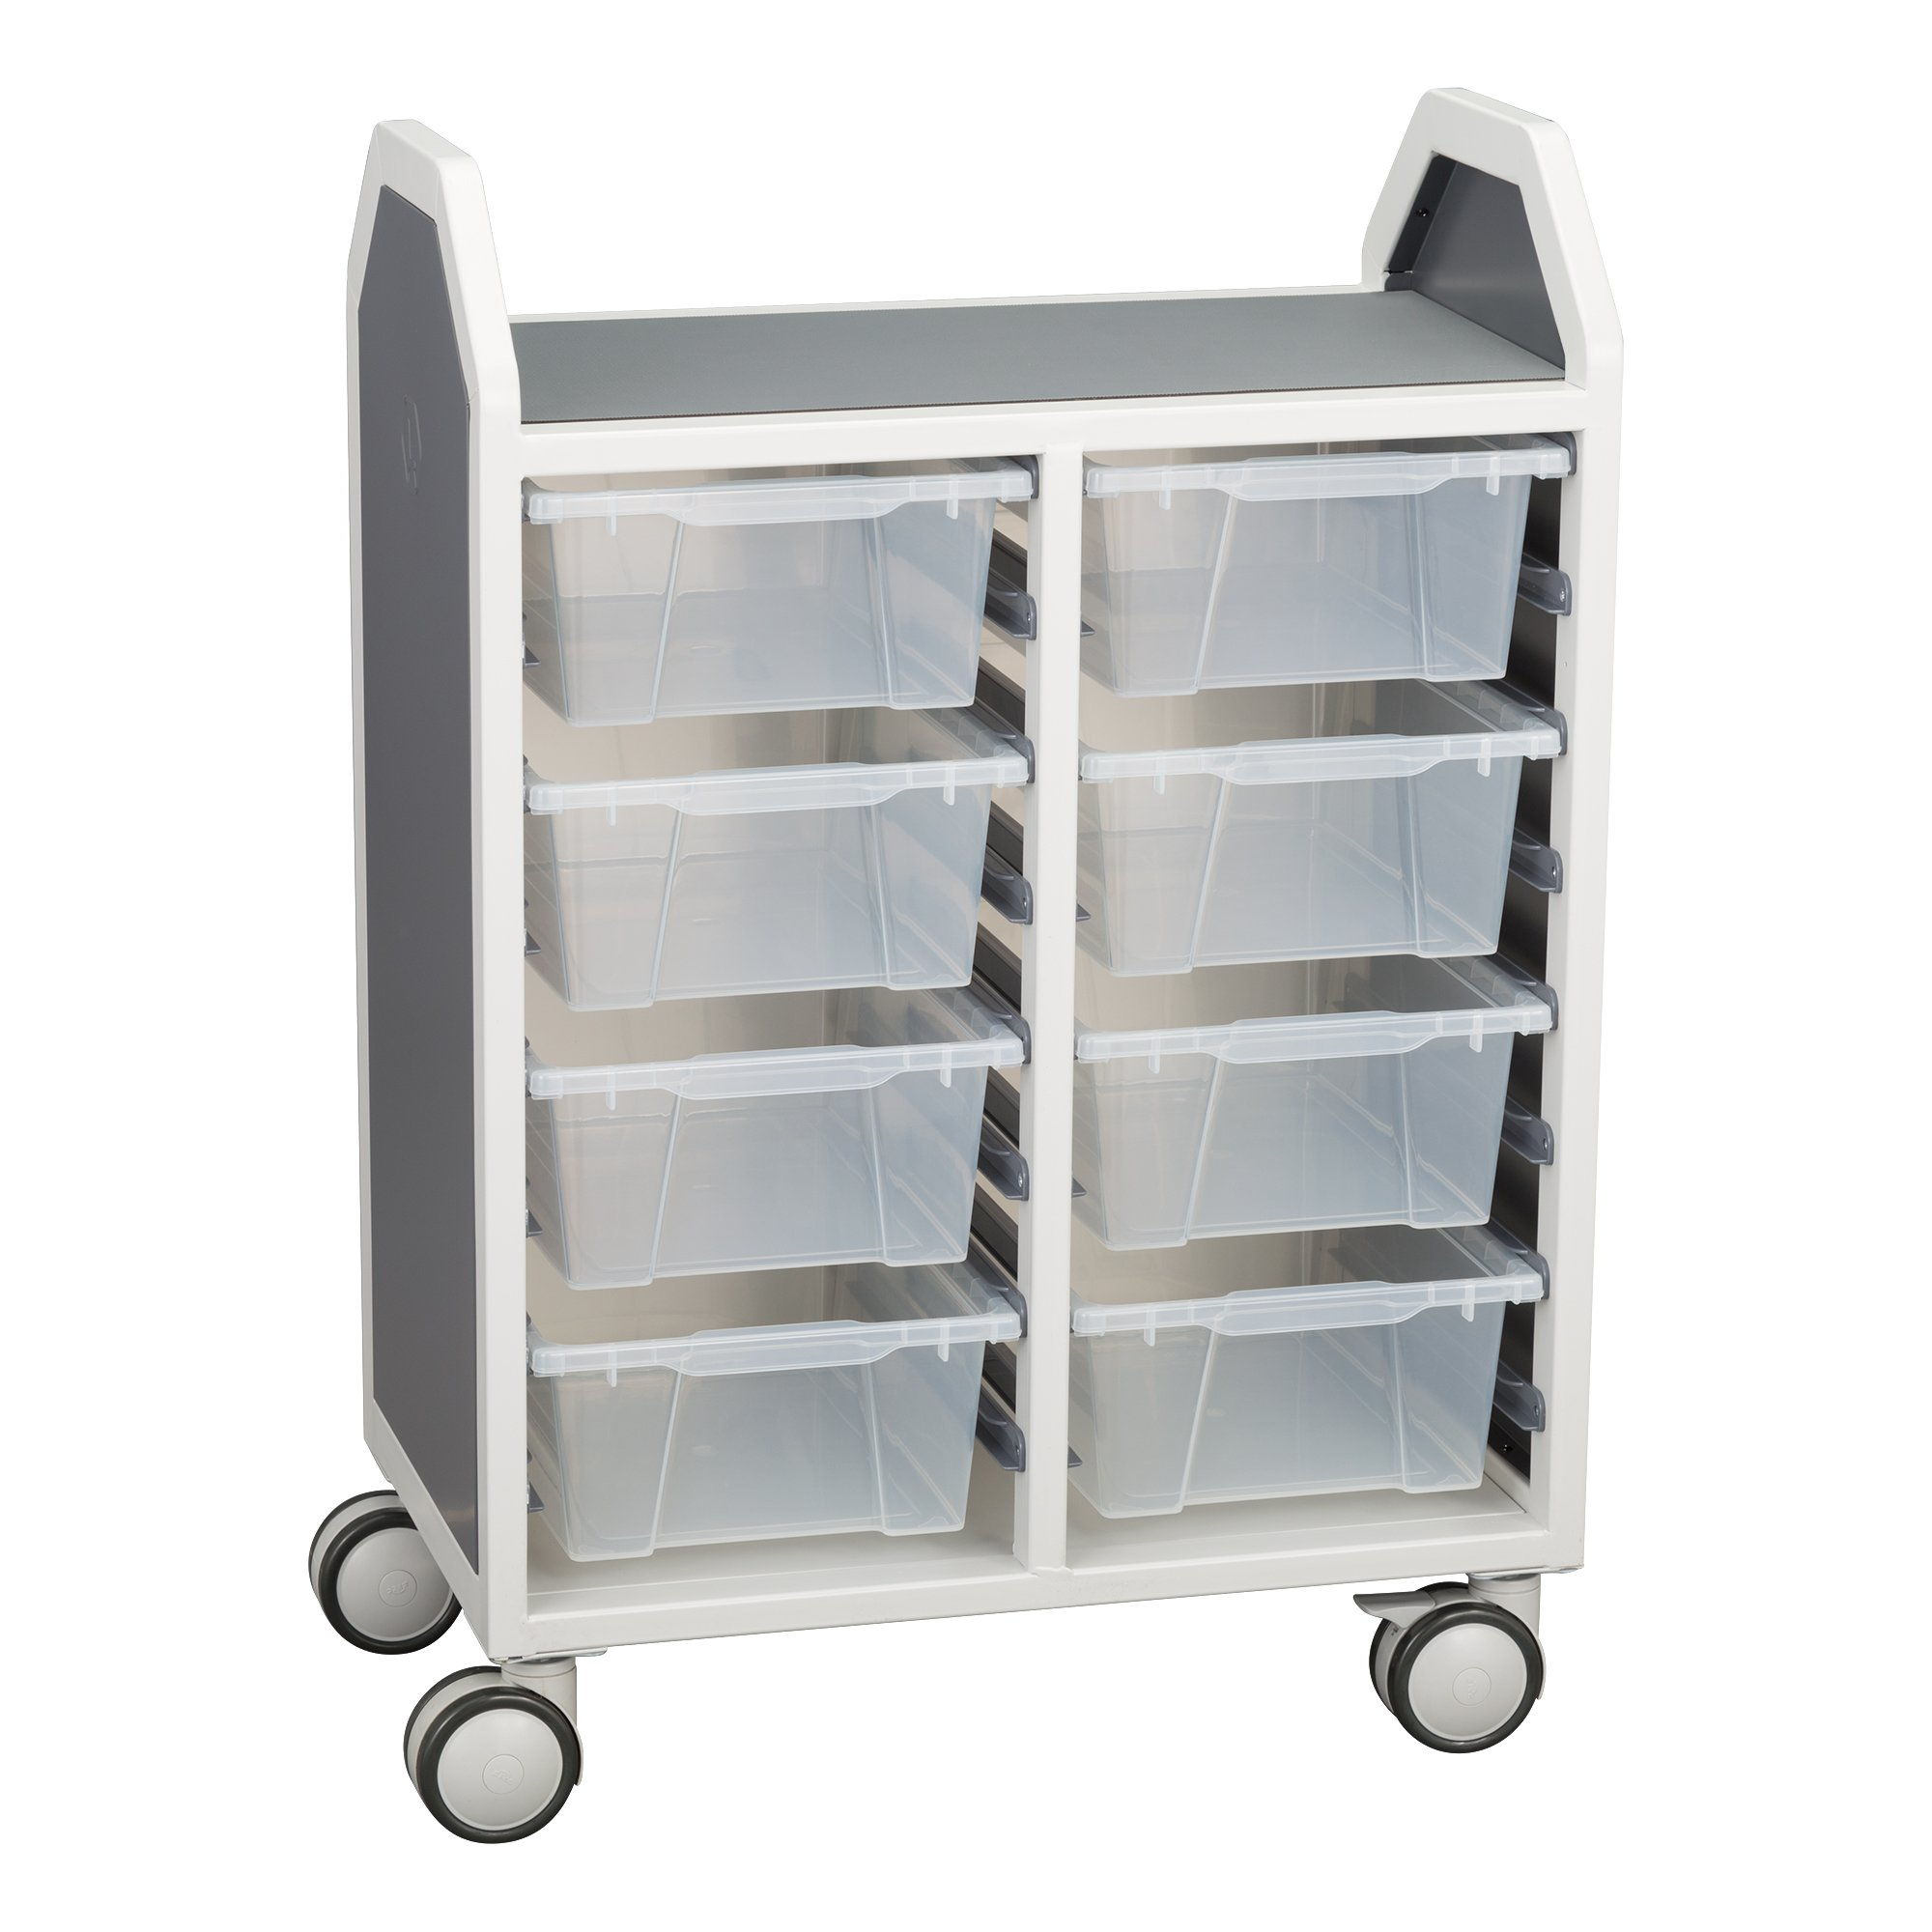 Learniture Profile Series Double-Wide Mobile Classroom Storage Cart with 8 Large Bins, LNT-GNO3041-PKAL-SO by School Outfitters